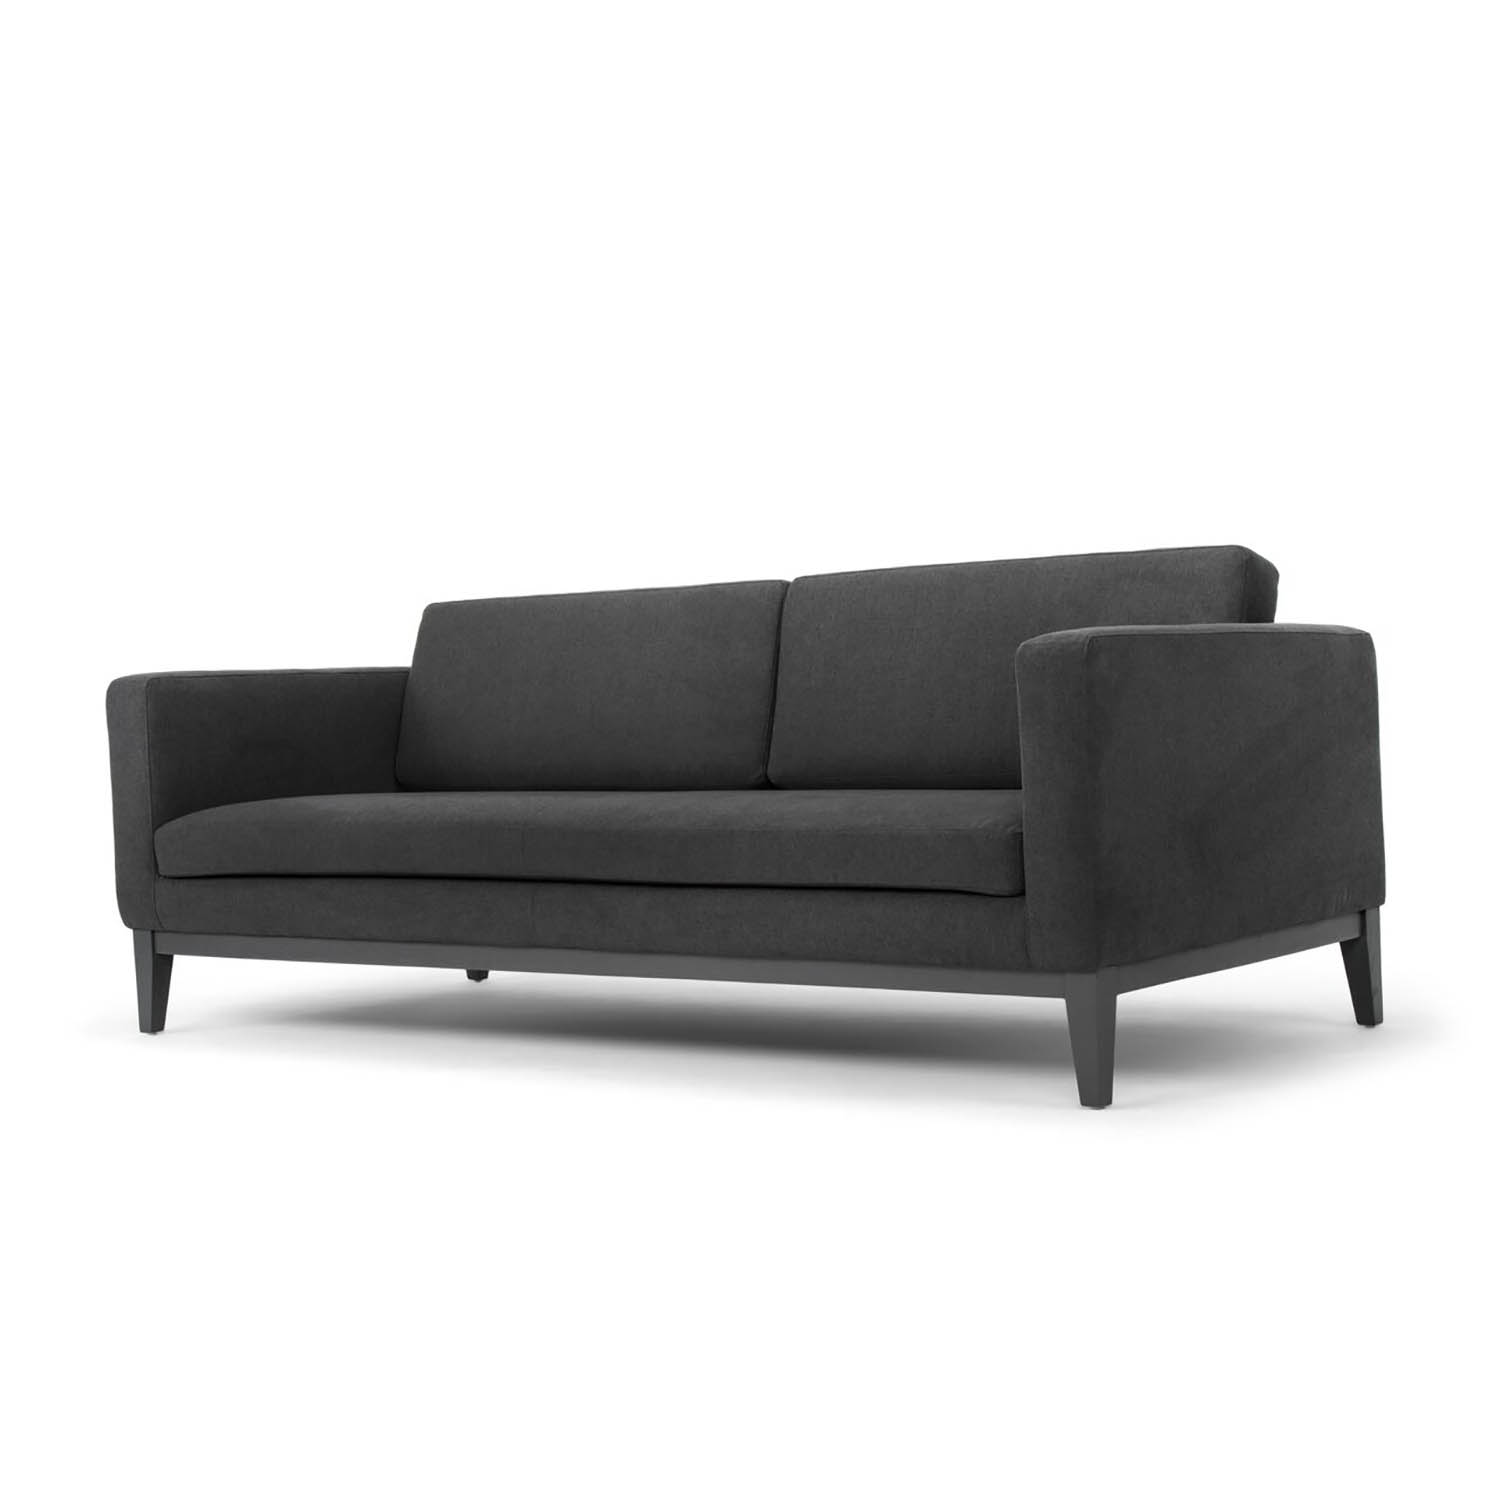 Day sofa, mørkegrå